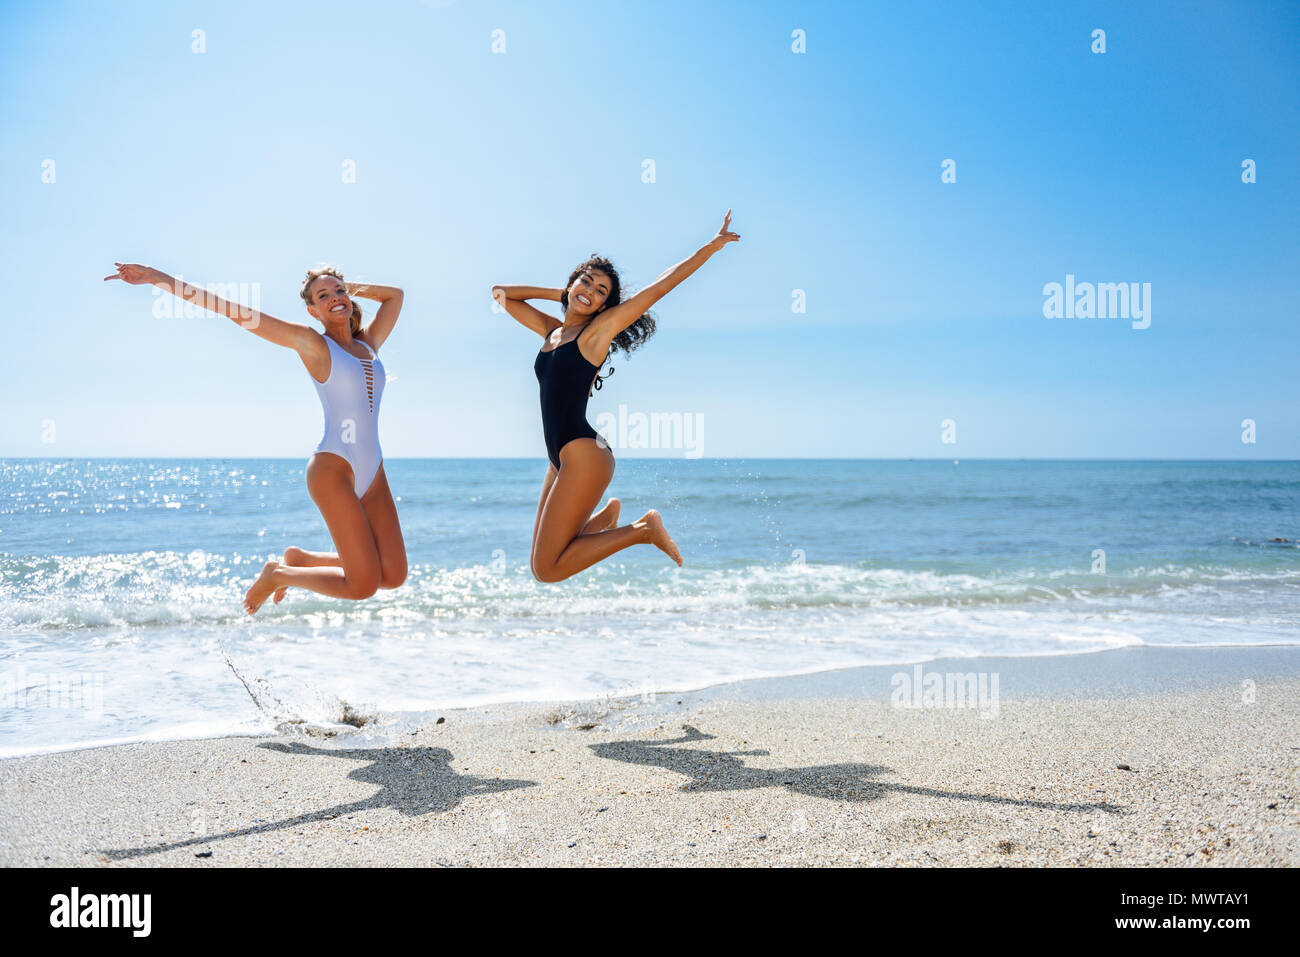 ef01f6d3250d5 Two funny girls with beautiful bodies in swimwear jumping on a tropical  beach. Funny caucasian and arabic females wearing black and white swimsuits.